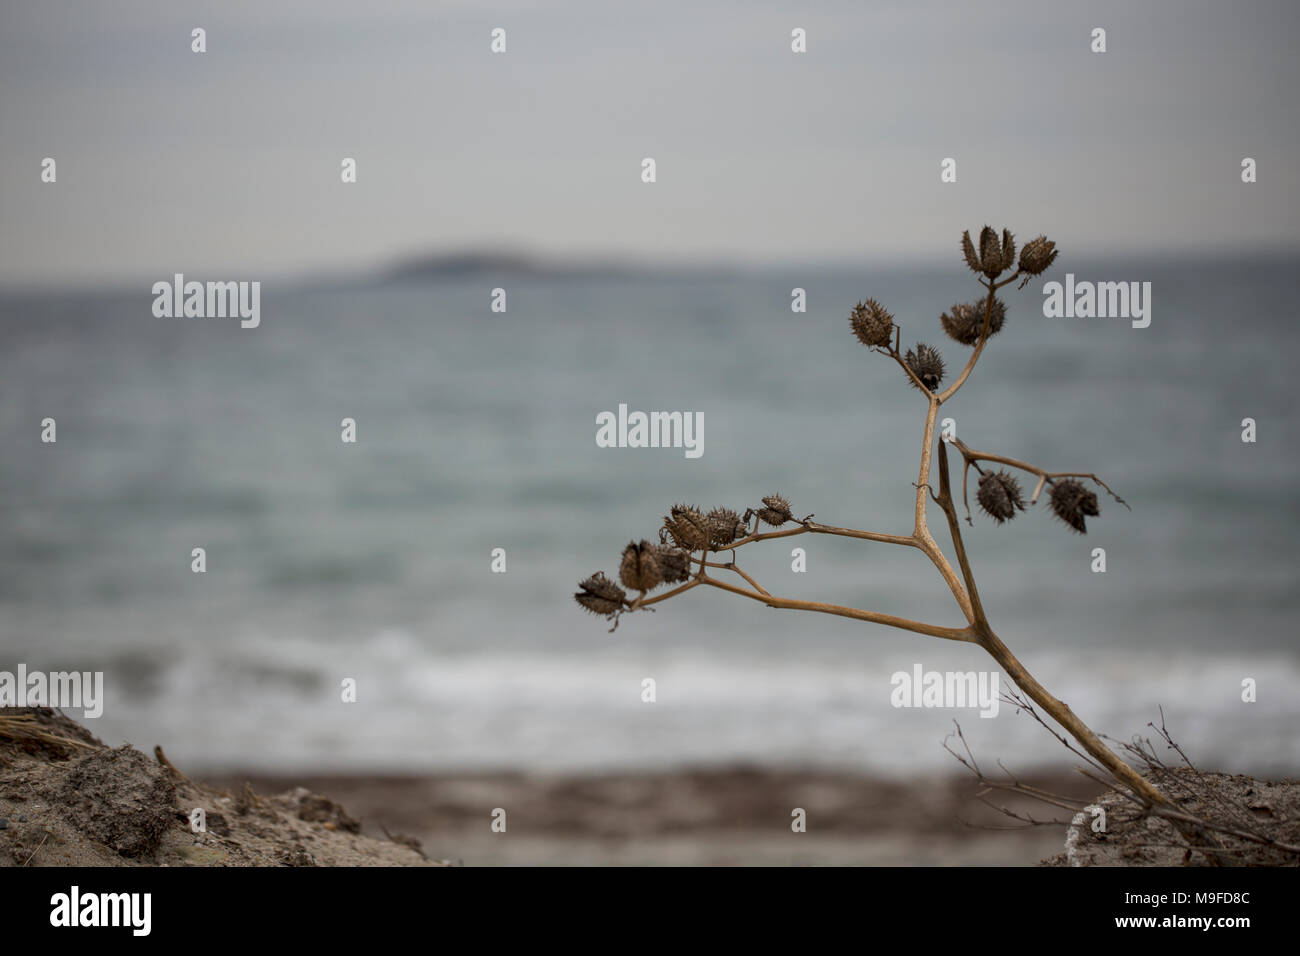 Dried flowers on a winter beach in Manchester-by-the-Sea, Massachusetts. Stock Photo